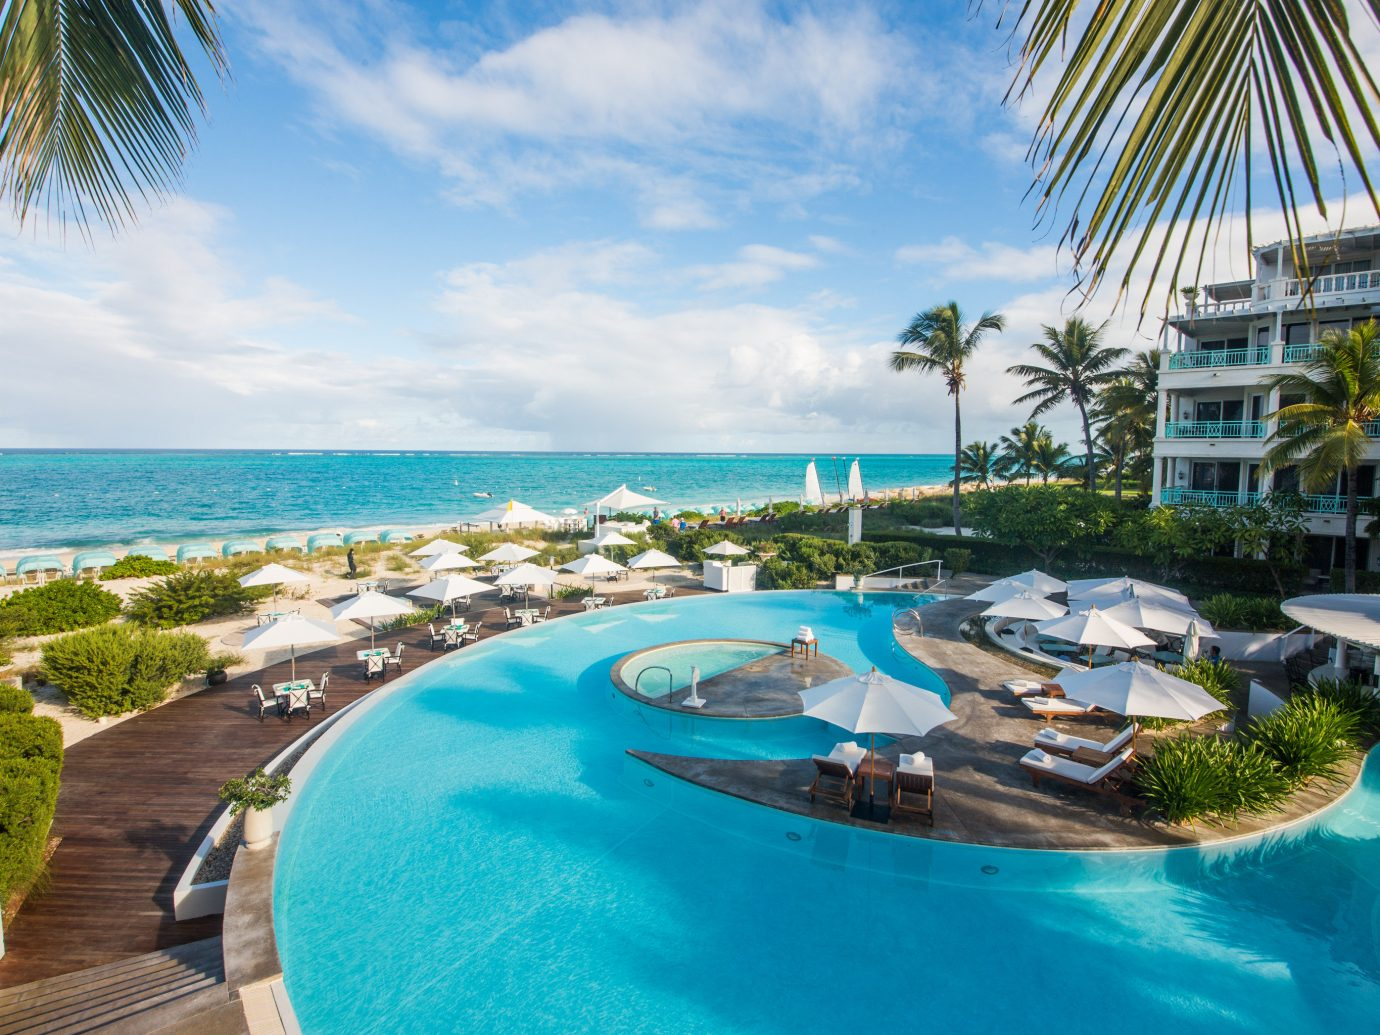 Hotels Romance Trip Ideas sky water outdoor Resort swimming pool leisure caribbean property vacation condominium estate reef resort town Water park Nature Pool Lagoon Sea Beach bay real estate lawn blue overlooking plant shore